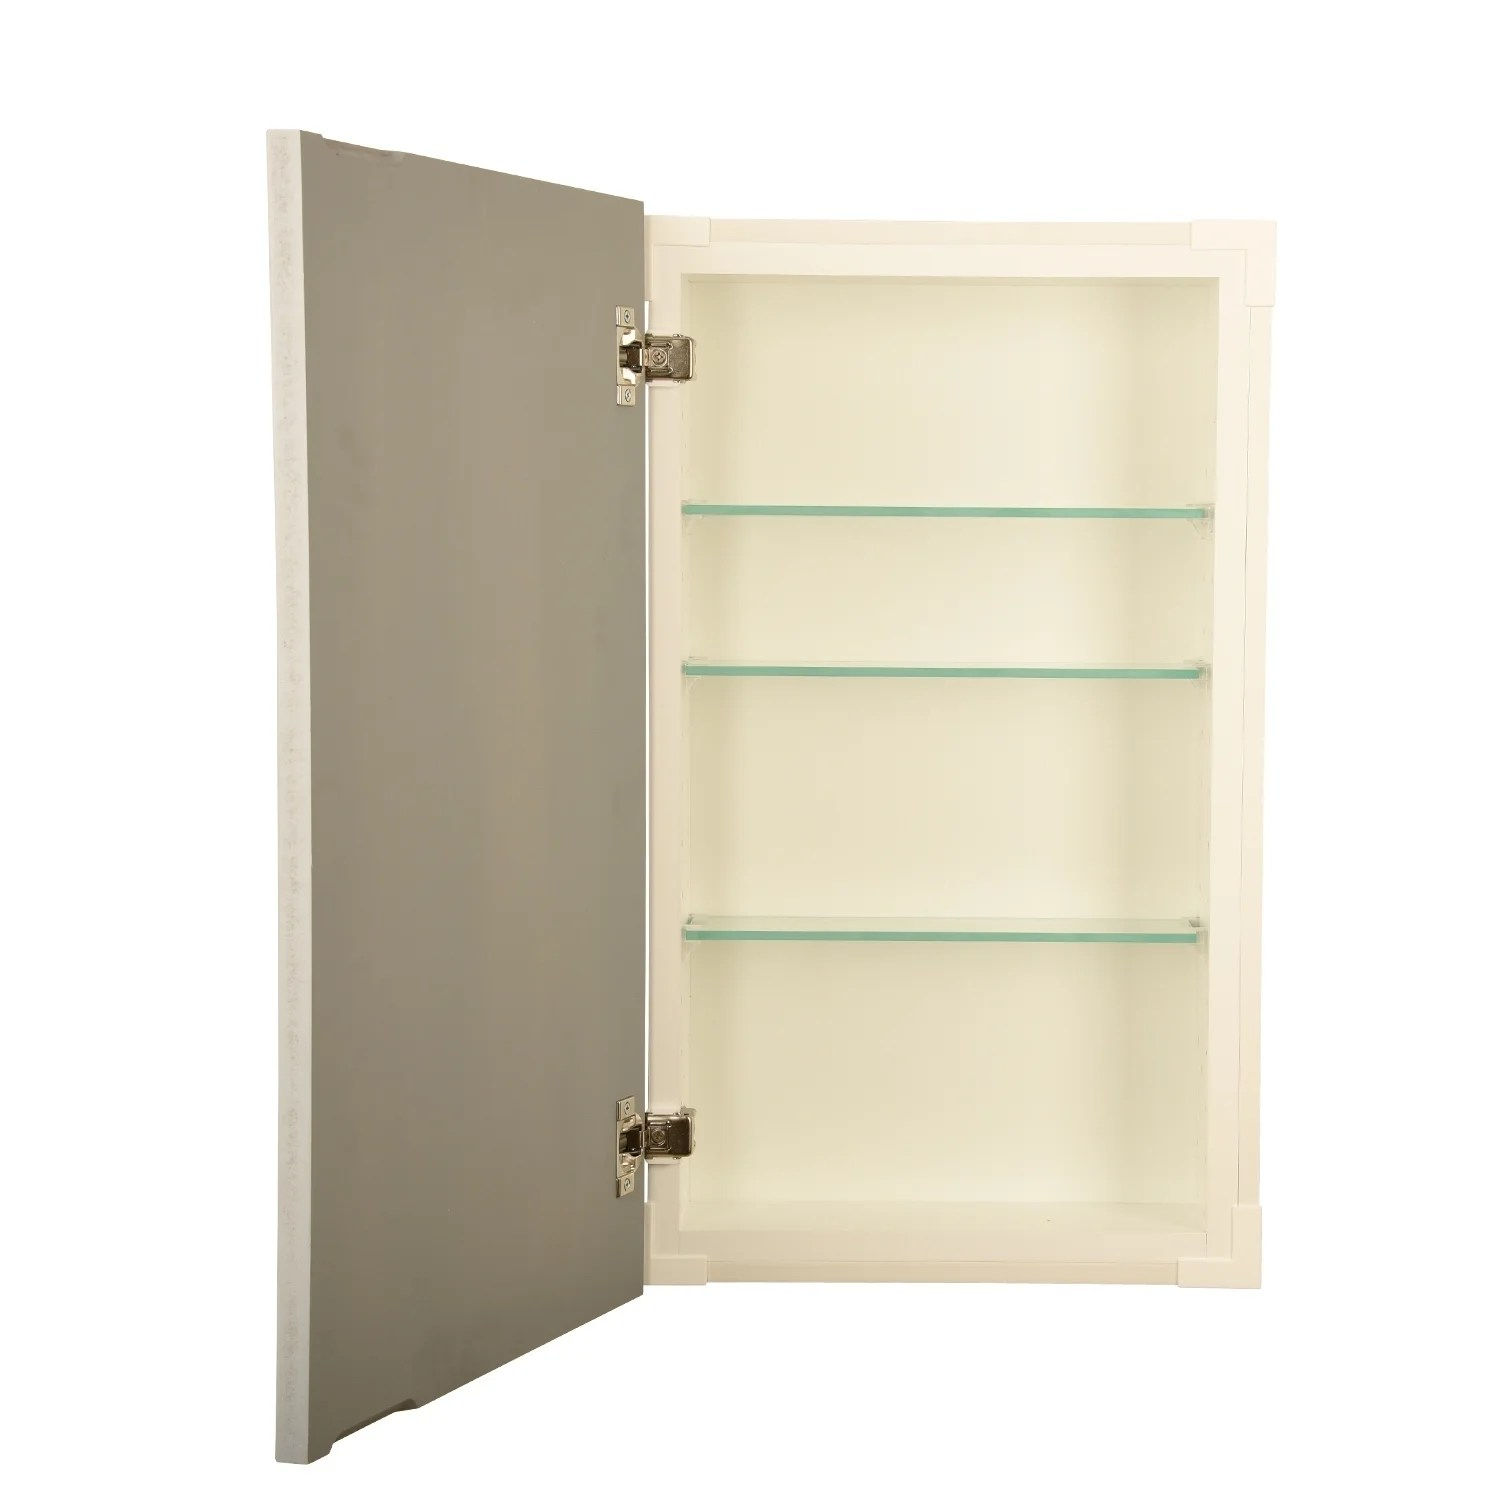 Recessed Shaving Cabinets 14x24 Recessed Disappearing Frameless Wall Cabinet 5 5